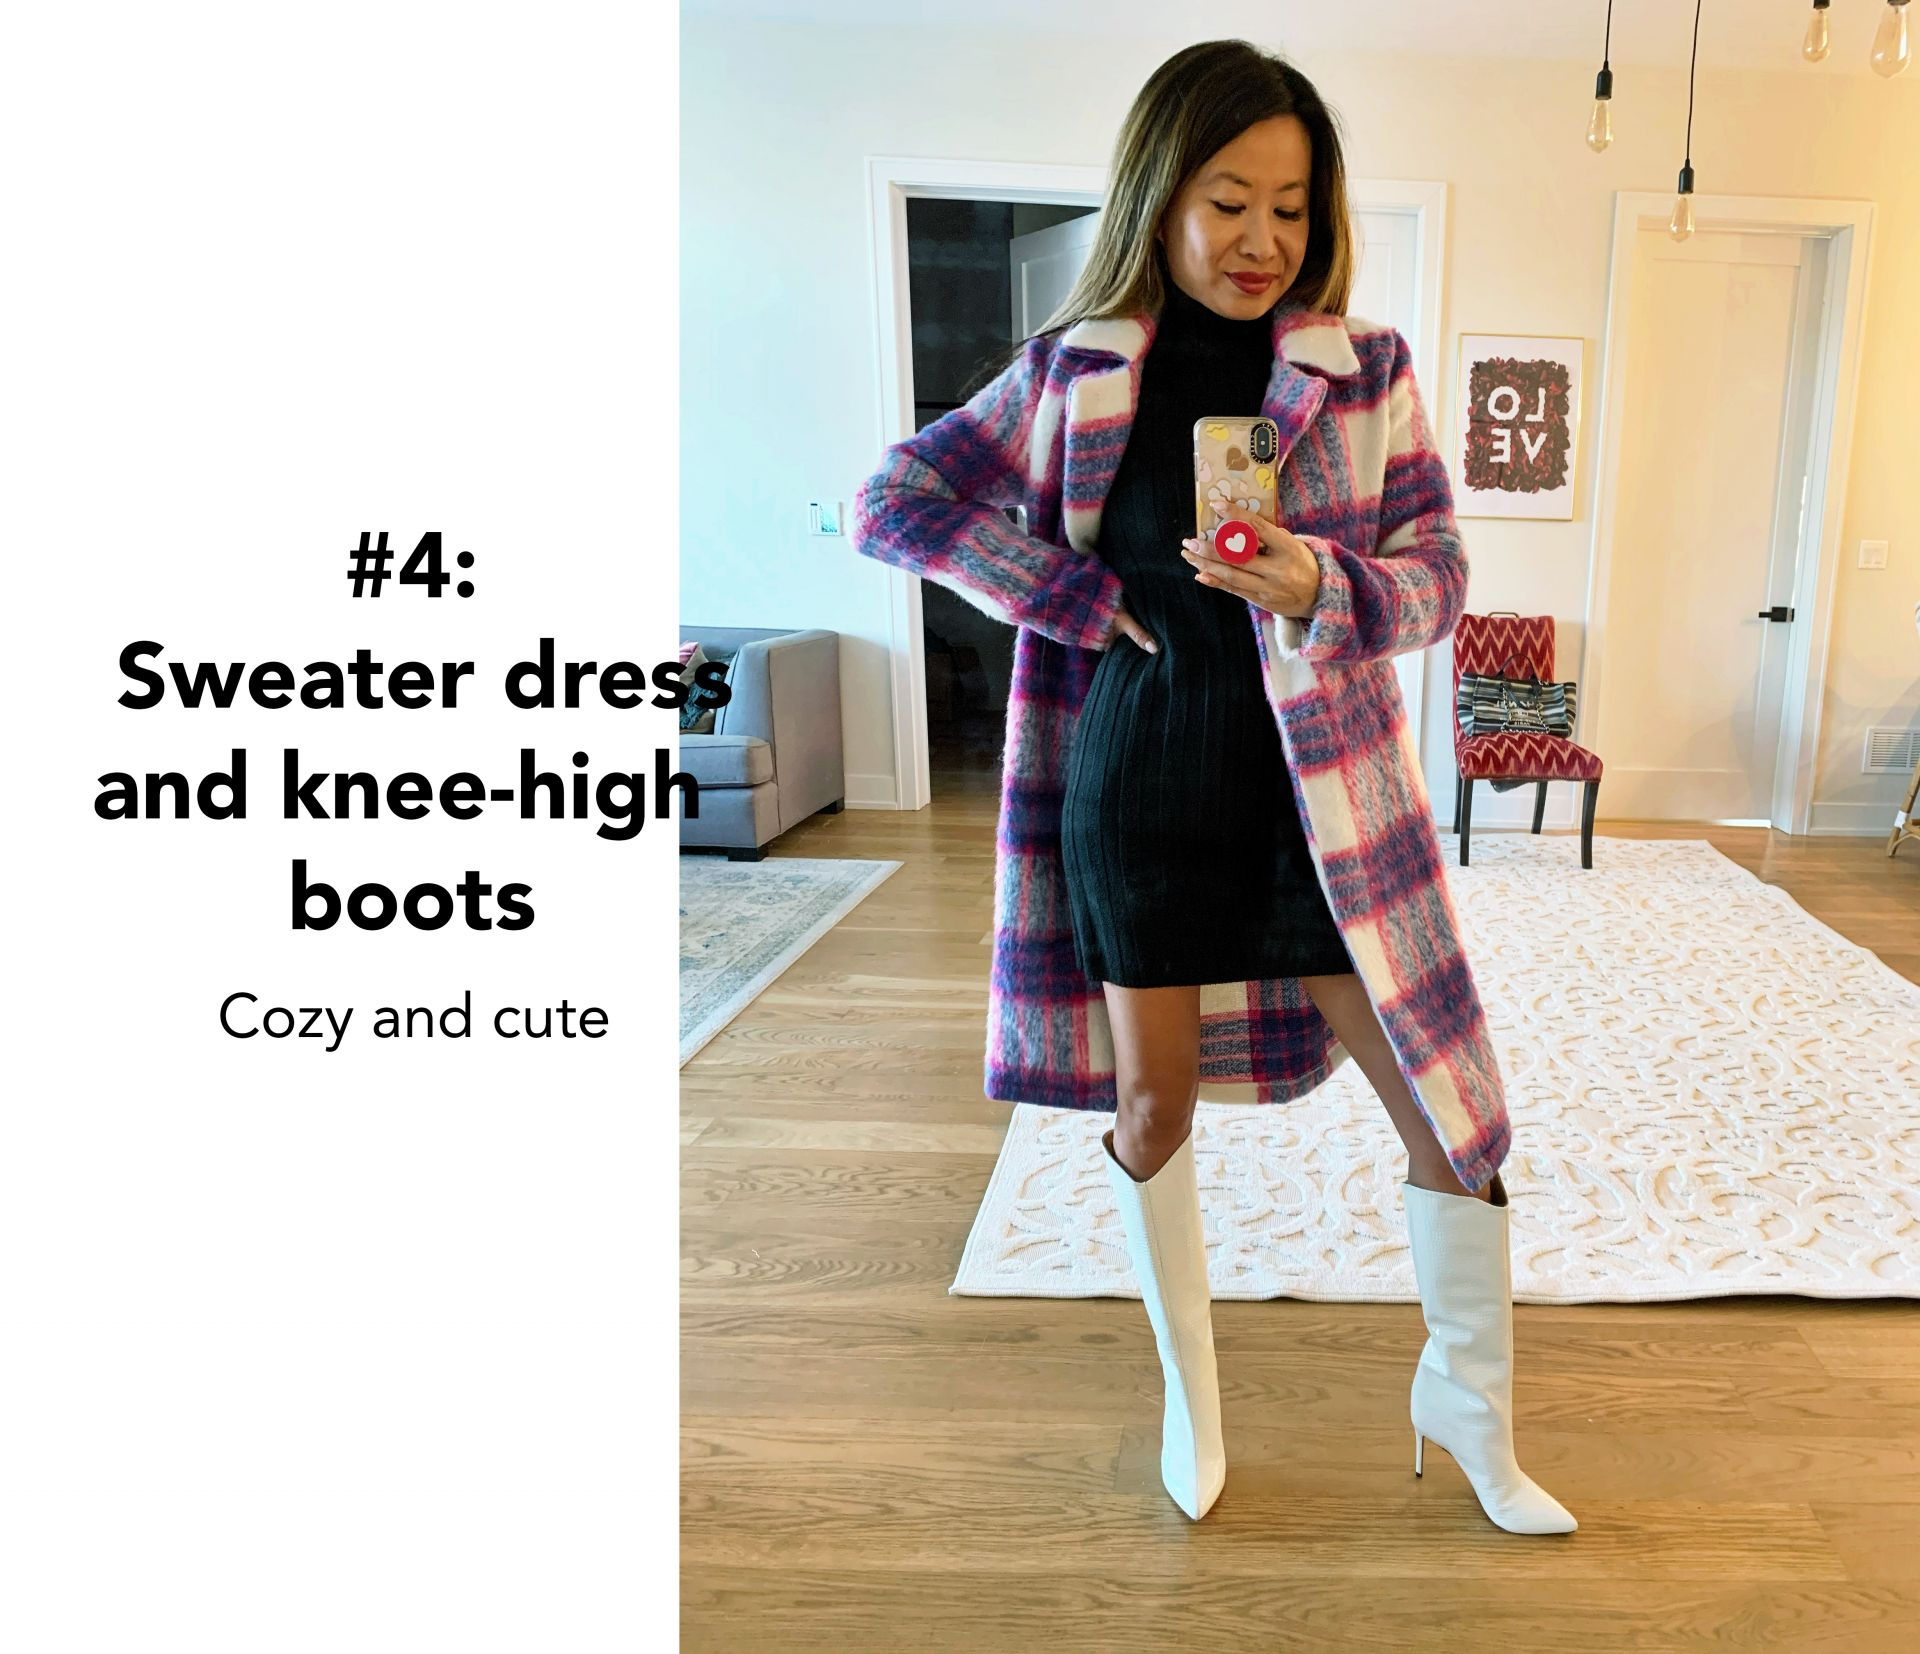 how to style a plaid coat, plaid coat, plaid coat outfits, plaid coats for women, red and blue plaid coat, red plaid coat, plaid coat street style, plaid coat style, long plaid coat, winter plaid coat, winter outfit ideas, printed coat style, how to style a plaid coat 6 ways, Jennifer Worman, Chicago blogger, style blogger, blogger outfits, blogger style, how to style a sweater dress, how to style a plaid coat with a sweater dress and knee high boots, knee high boots outfit ideas, sweater dress style, knee high boots style